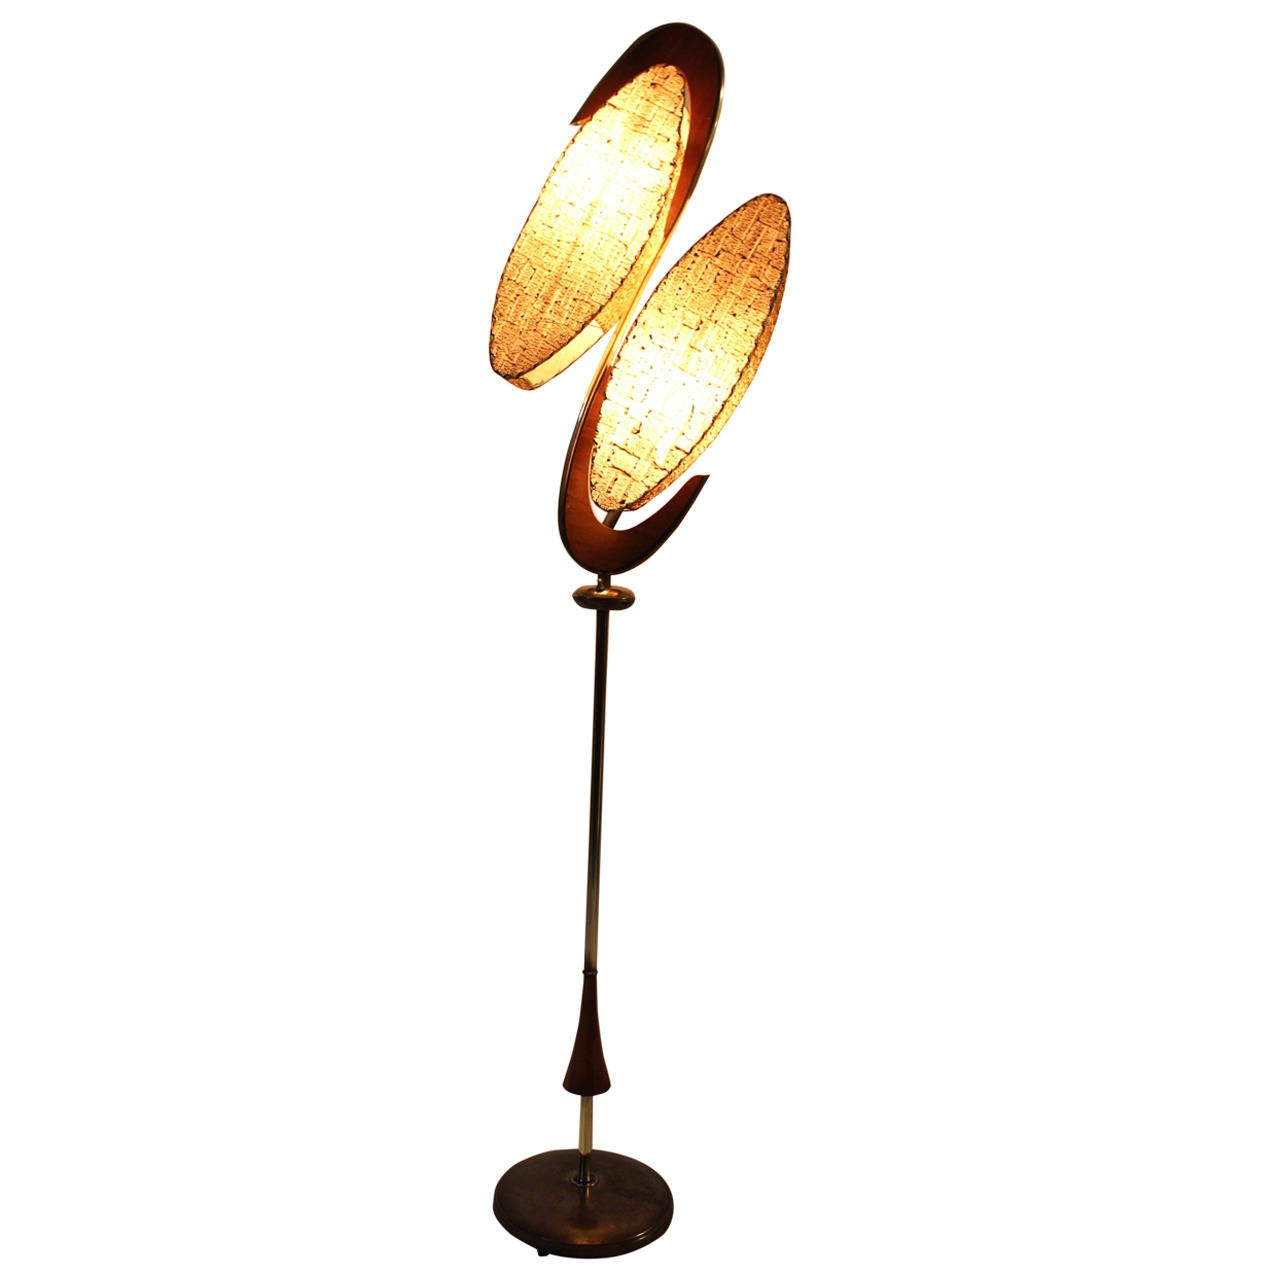 mid century modern floor lamp by majestic usa at 1stdibs. Black Bedroom Furniture Sets. Home Design Ideas